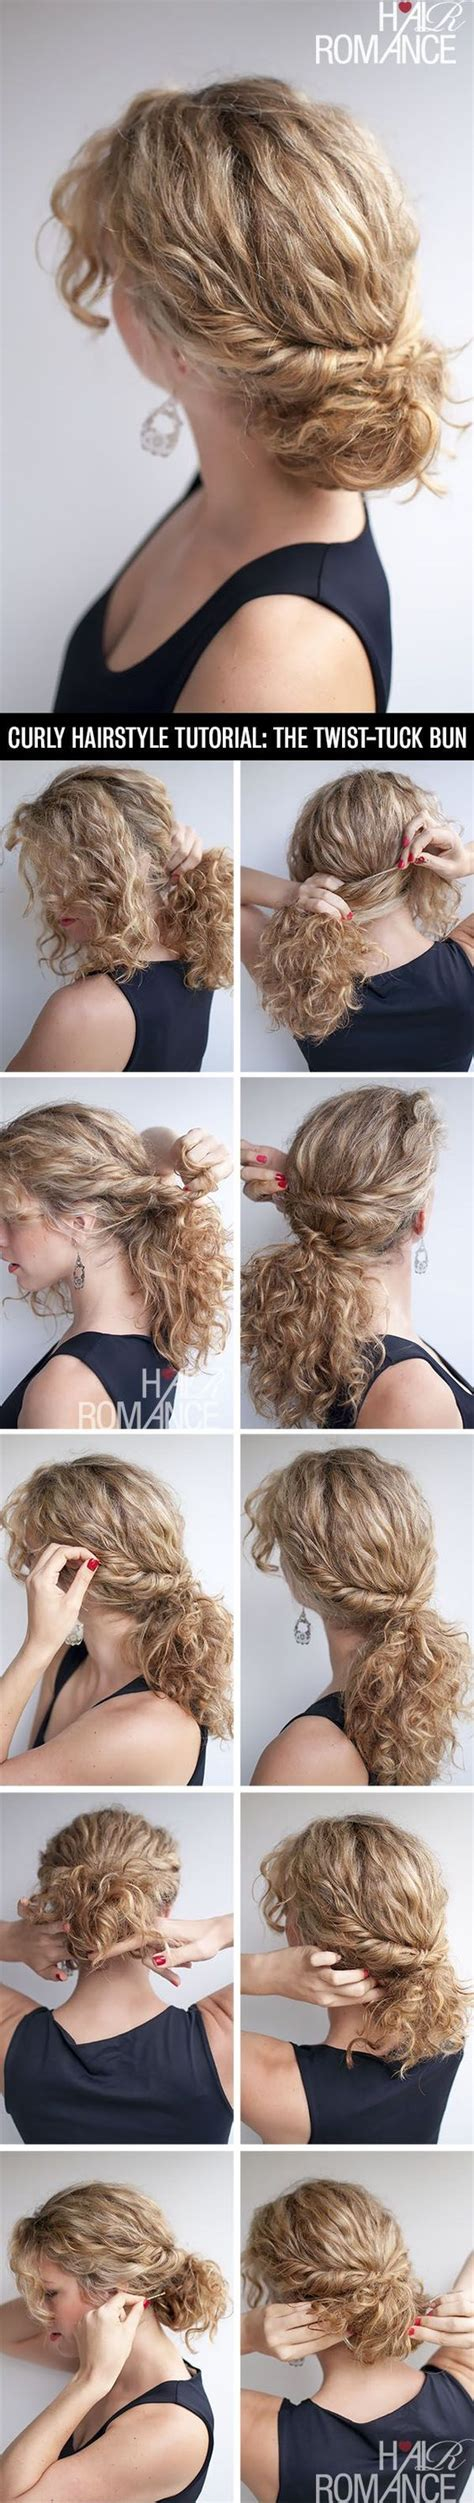 curly hairstyles tutorial hair romance curly hairstyle tutorial the twist tuck